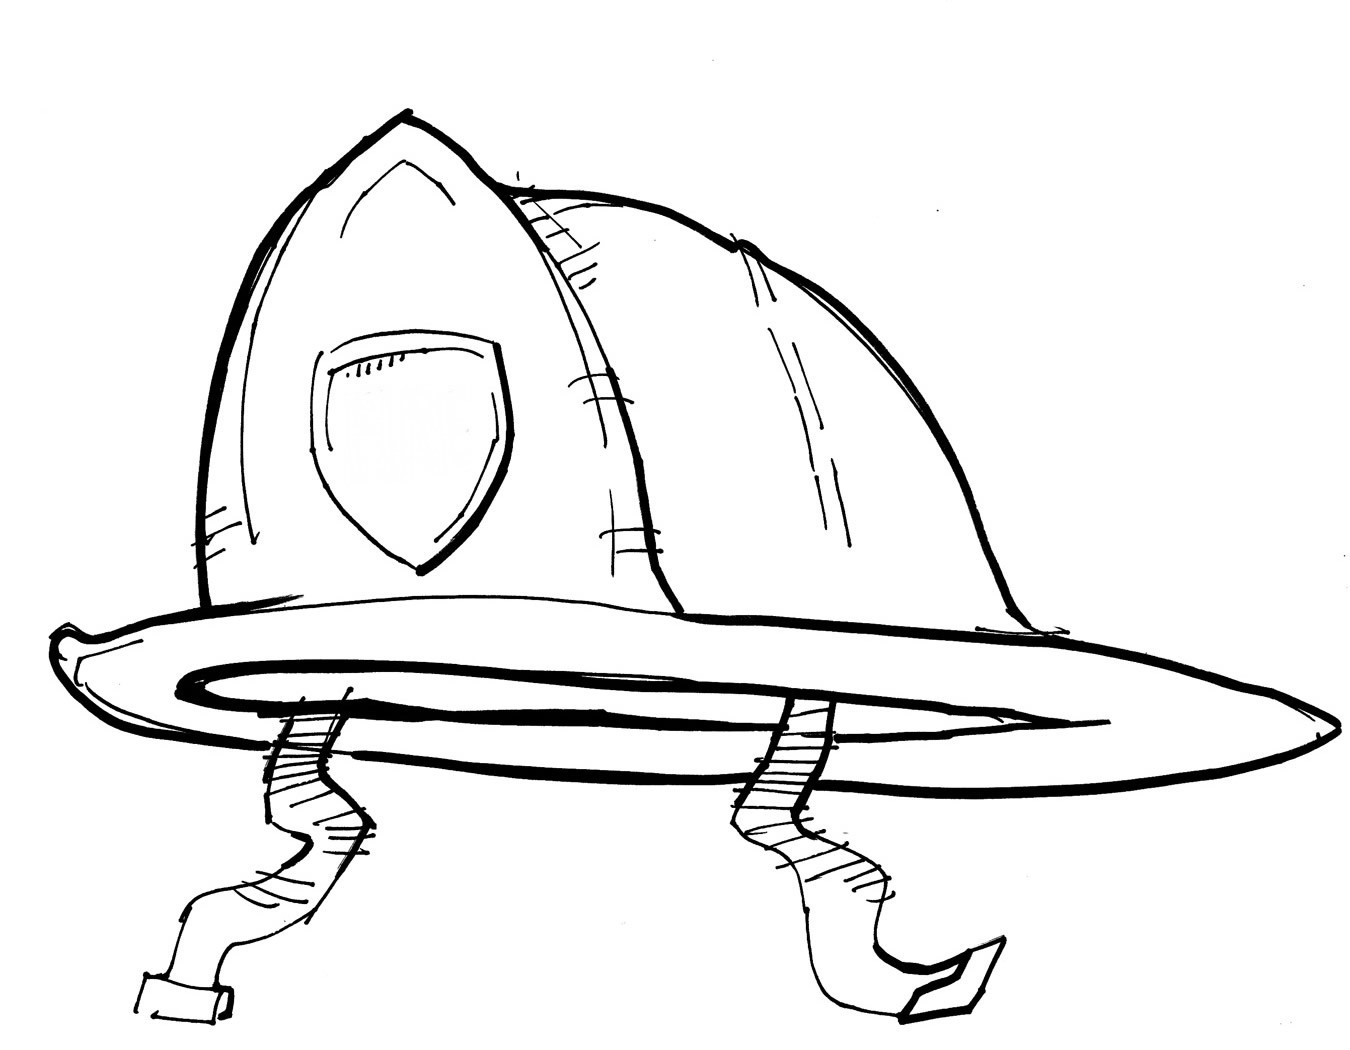 coloring book pages fireman hat - photo#6